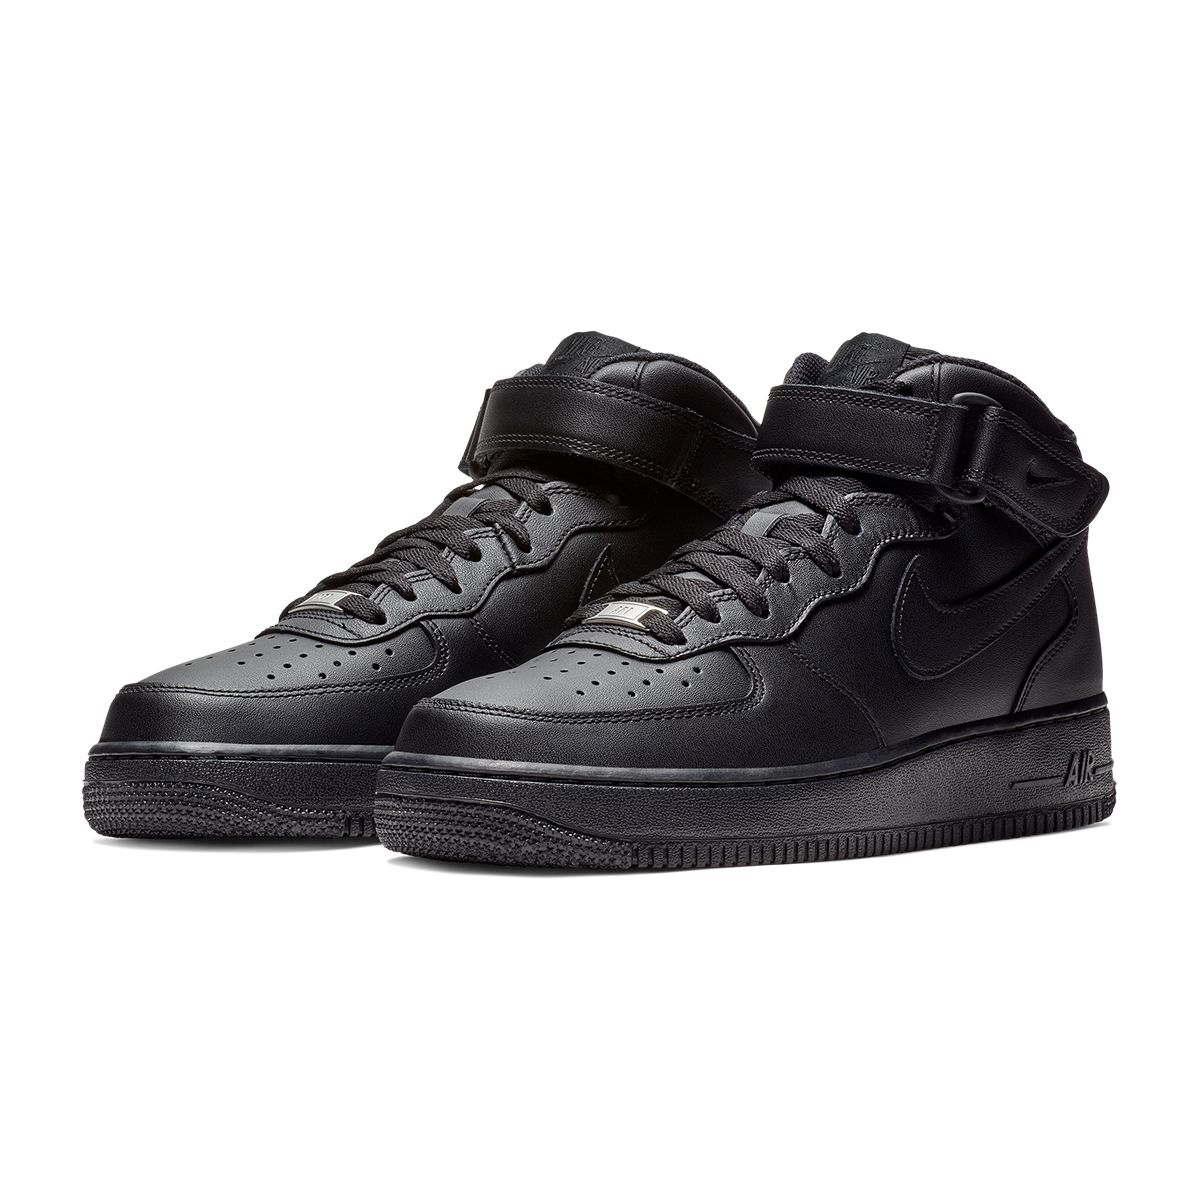 NIKE AIR FORCE 1 MID '07 / 001:BLACK-BLACK